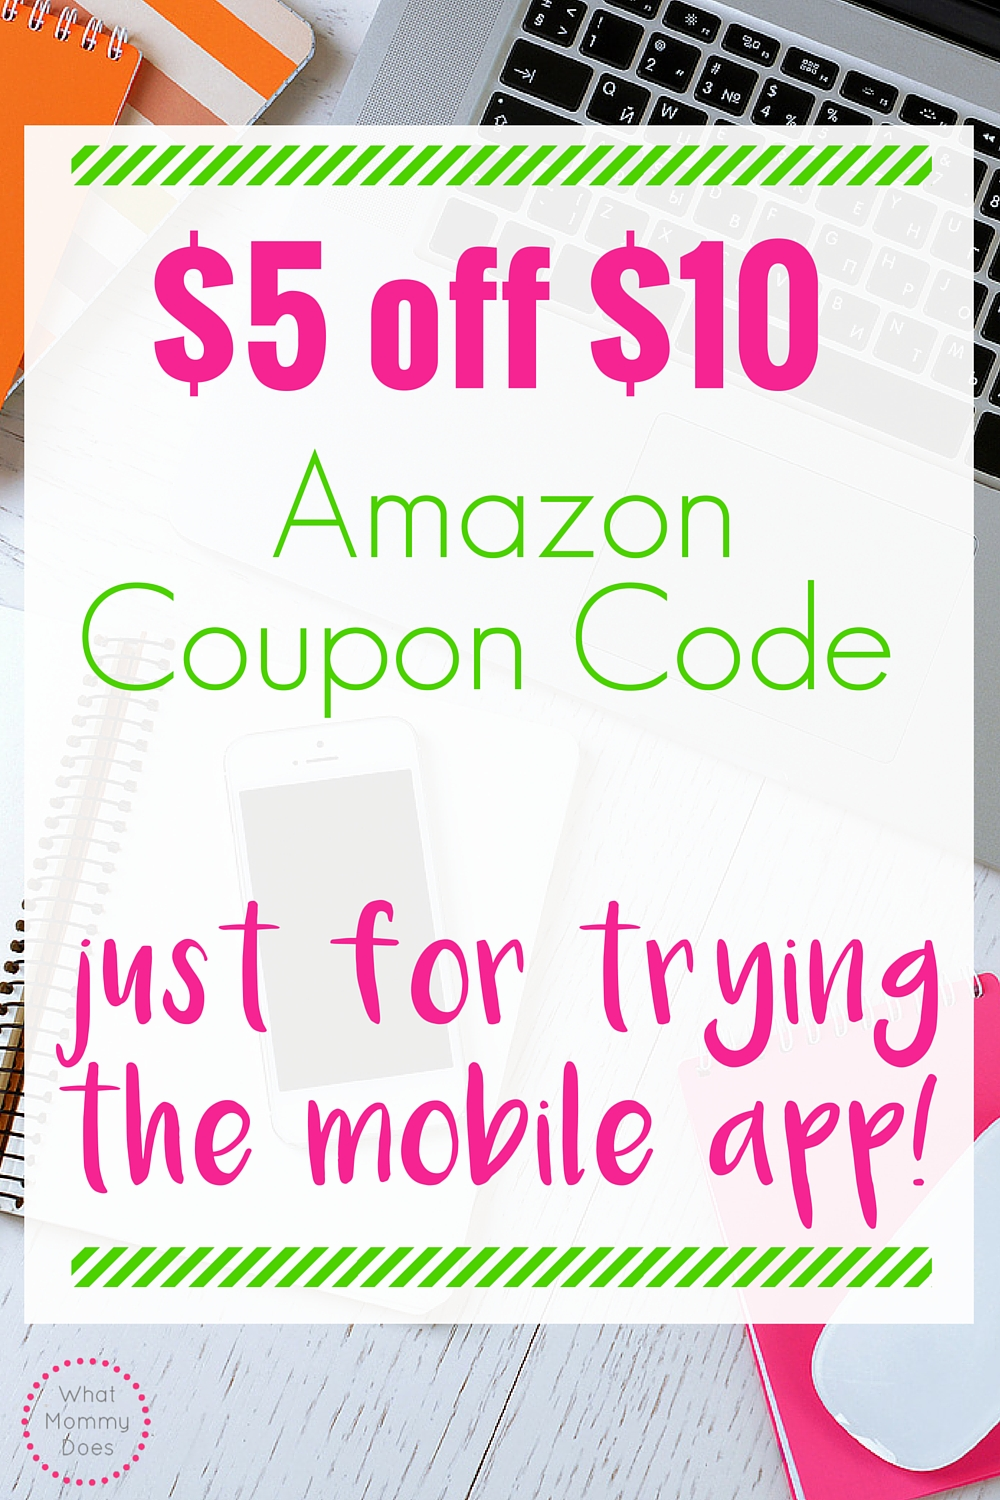 Amazon App Deal - Save $5 on your first $10 purchase using the Amazon mobile app. Great way to save money on Amazon!